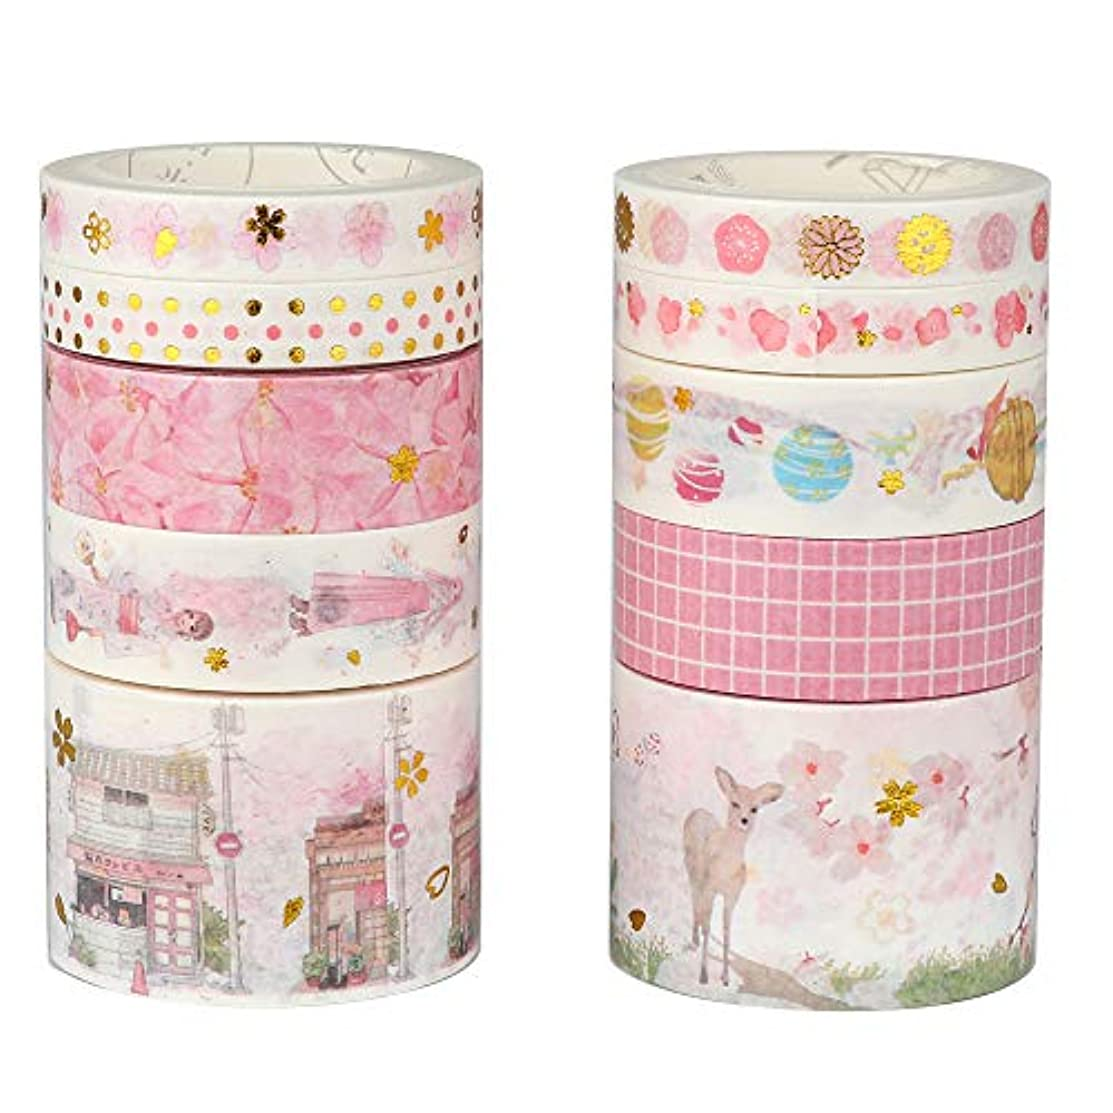 Molshine 10Rolls(Length 16.4ft/Roll) Washi Masking Tape Set,Adhesive Paper,Crafts Tape for DIY,Planners,Scrapbook,Object Decorative,Collection,Gift Wrapping-Japanese Cherry Blossom Series